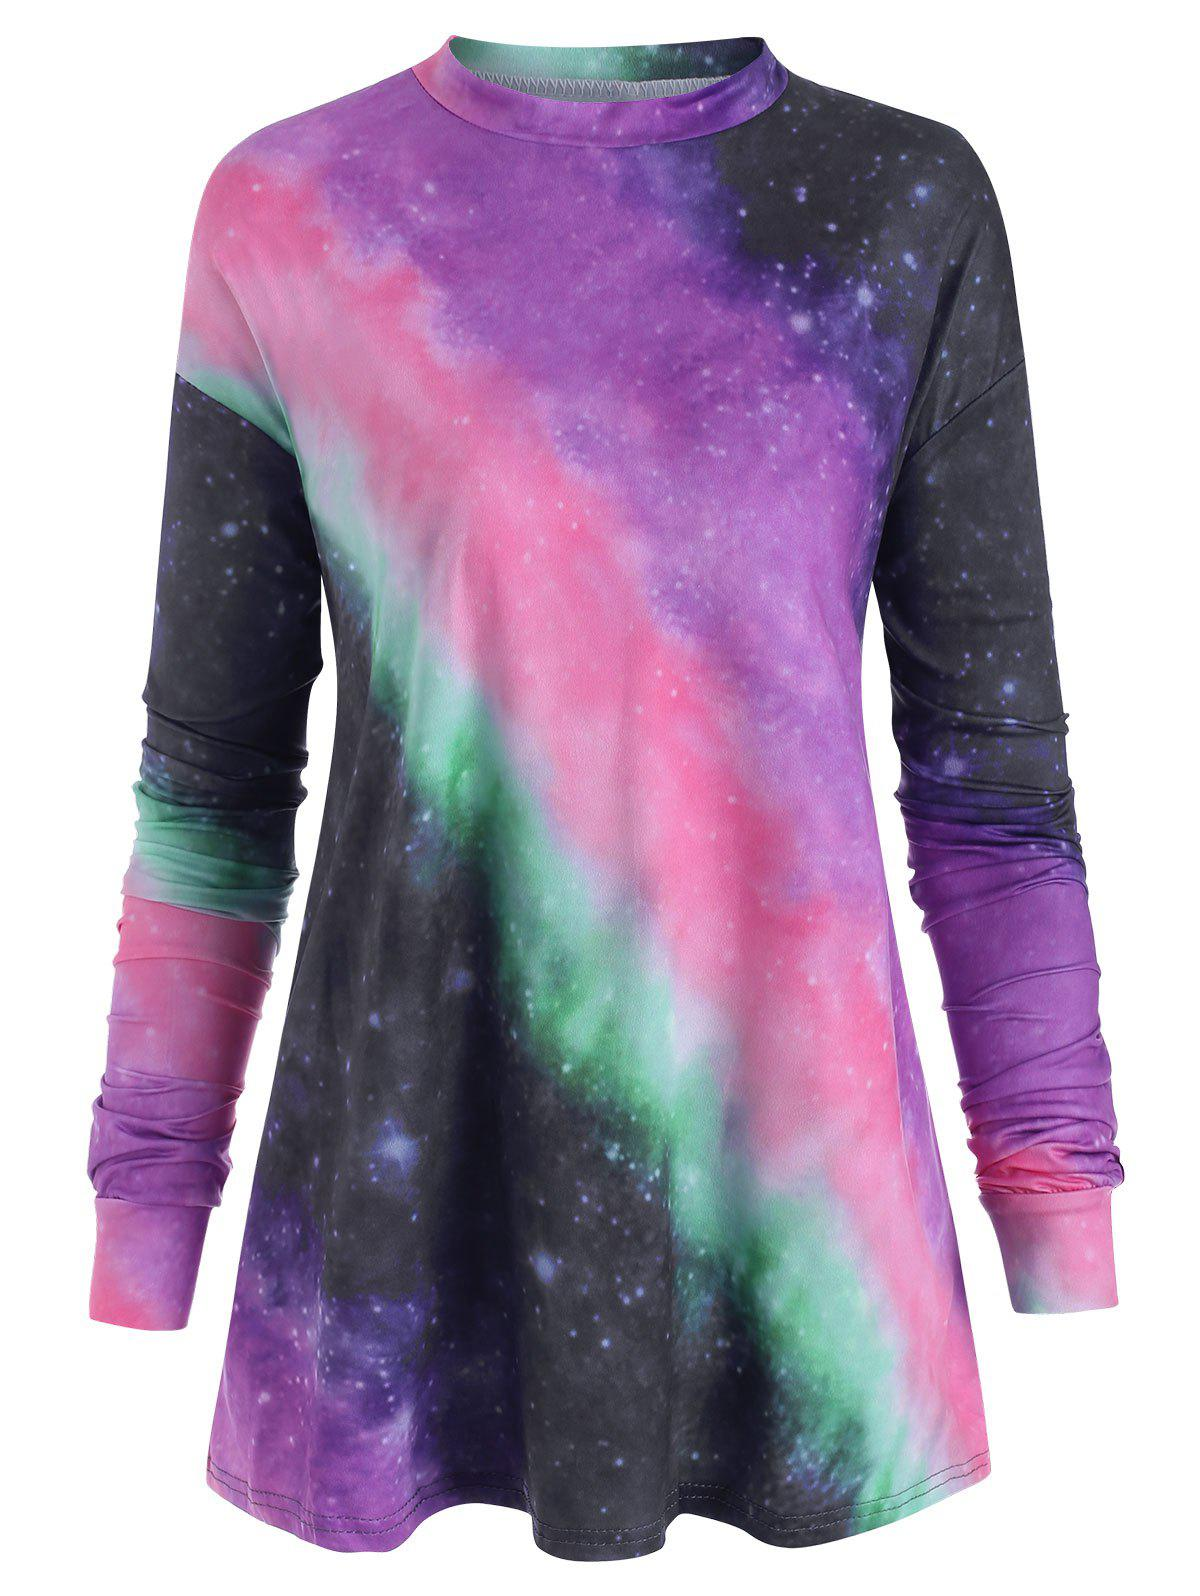 Plus Size Pastel Tie Dye T Shirt - PURPLE 5X